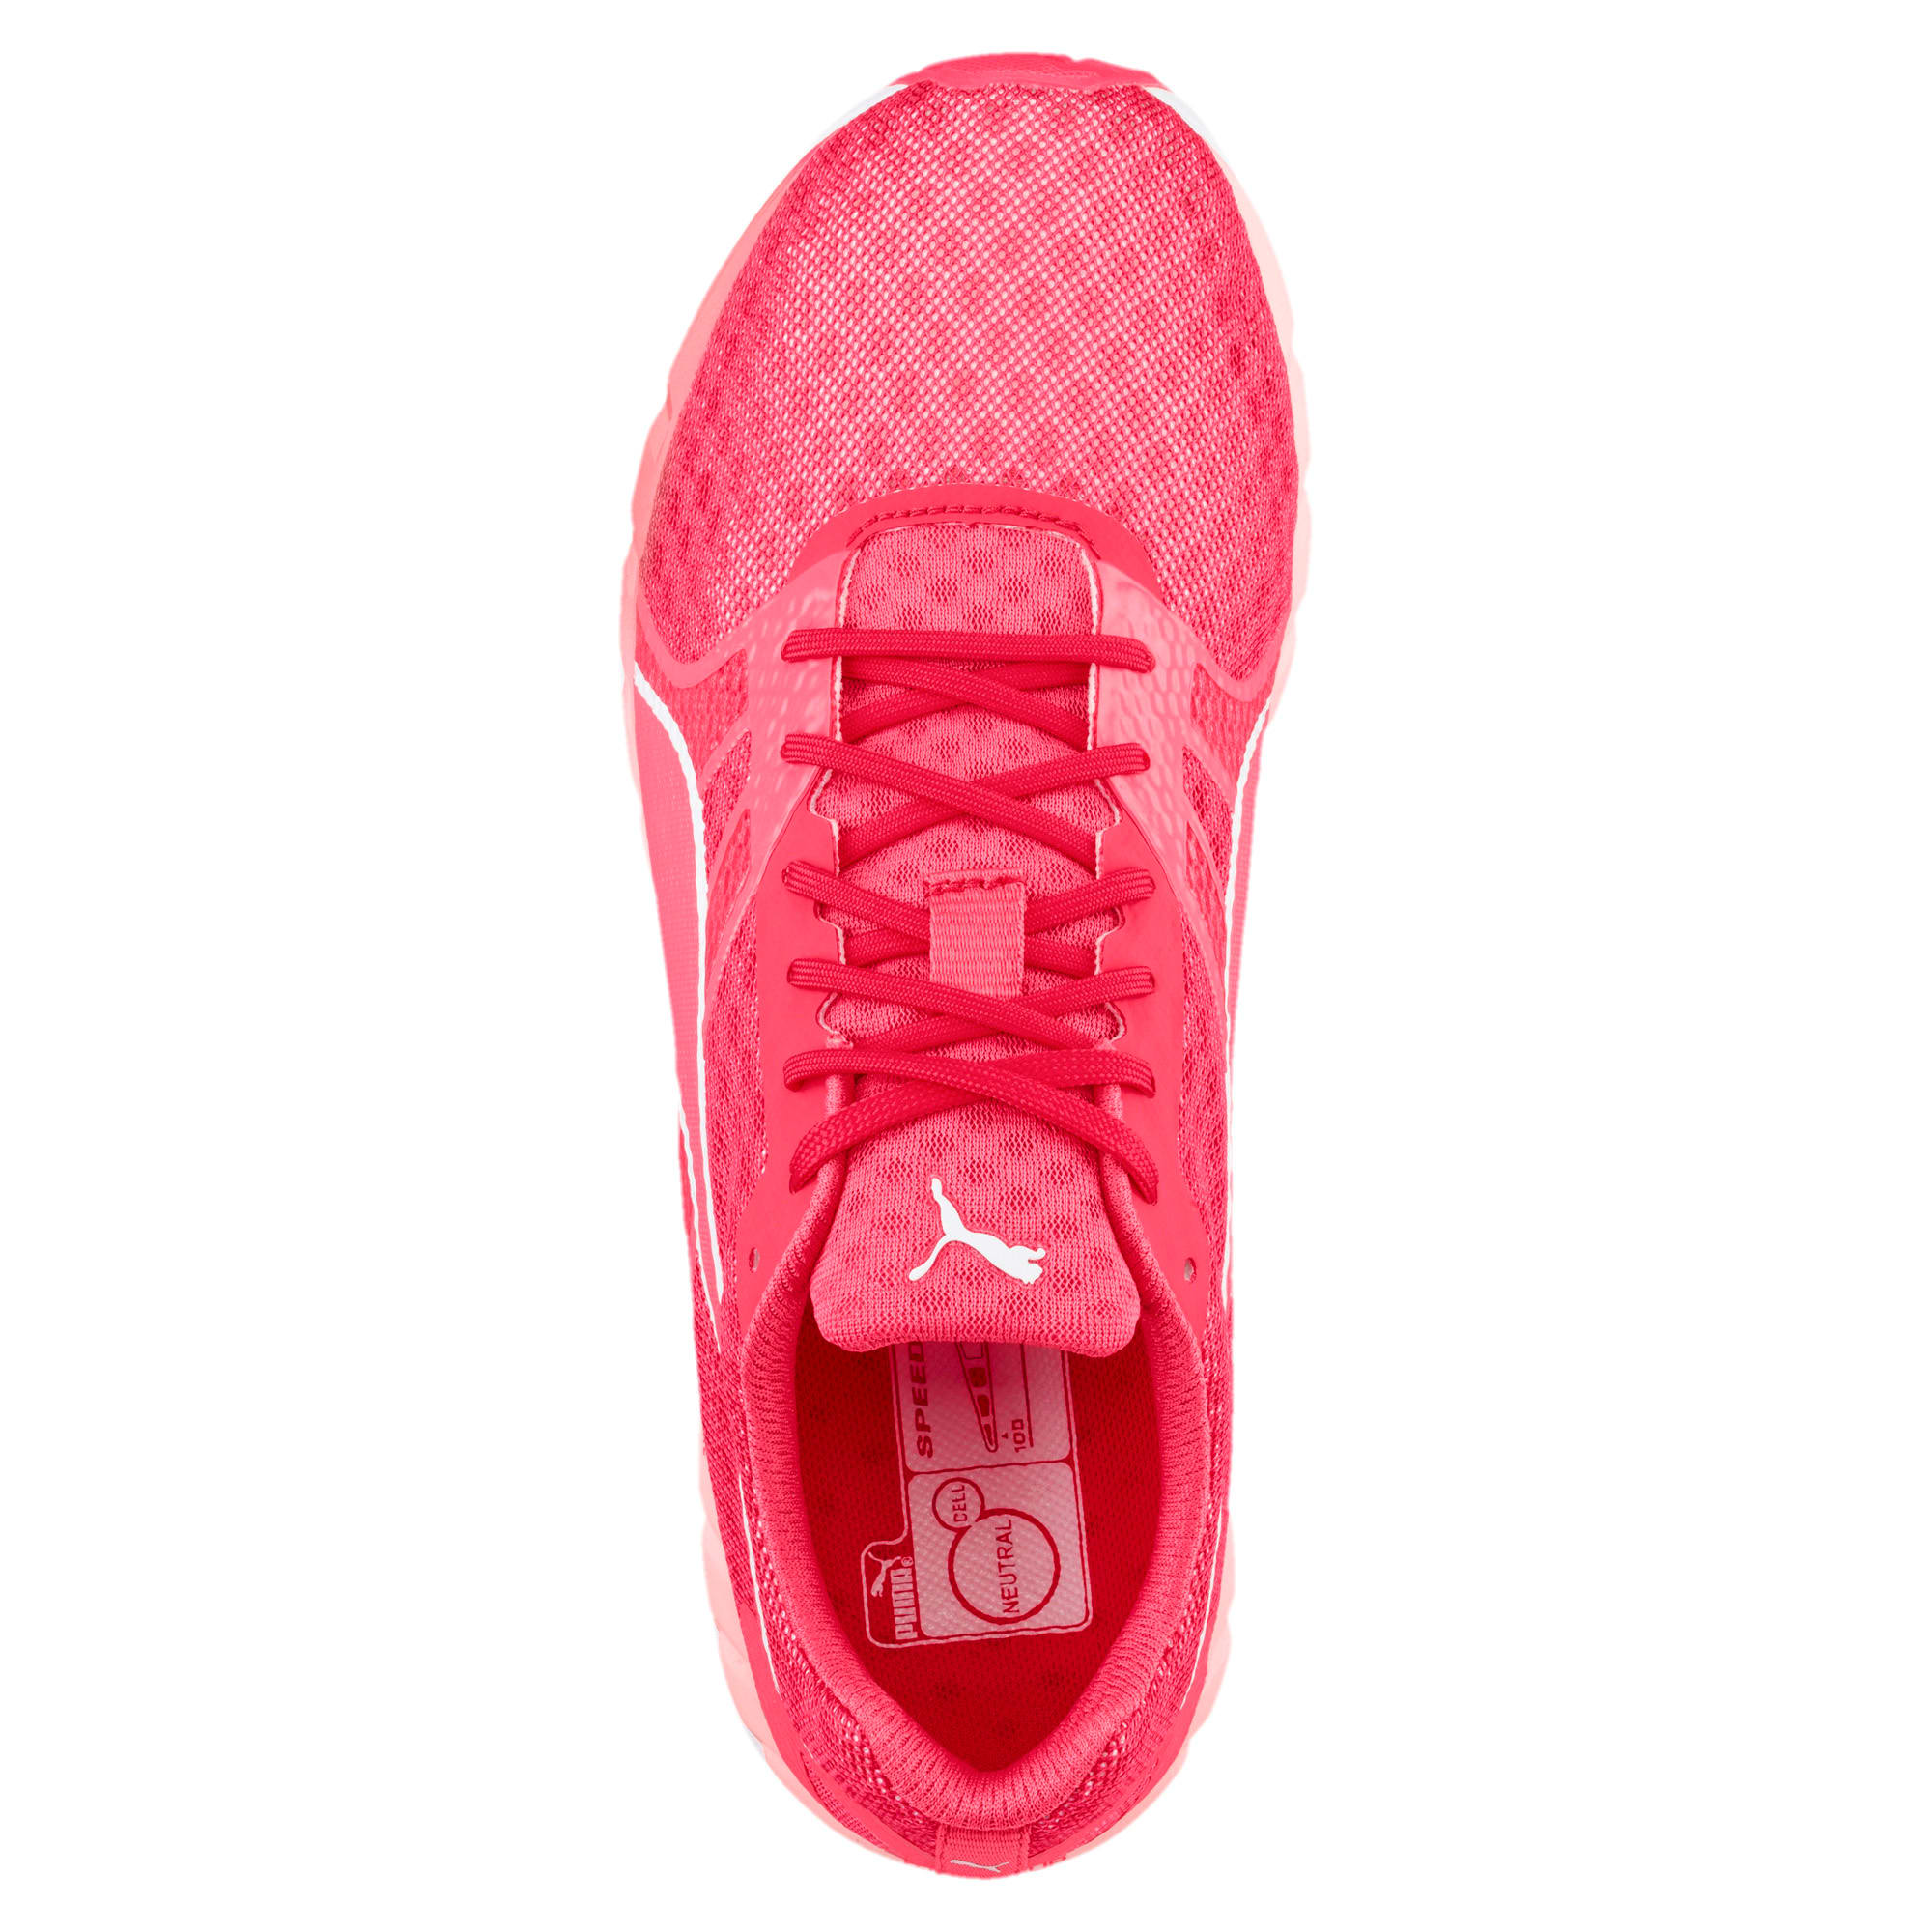 Thumbnail 5 of Speed 300 IGNITE 3 Women's Running Shoes, Pink-Fluo Peach-White, medium-IND